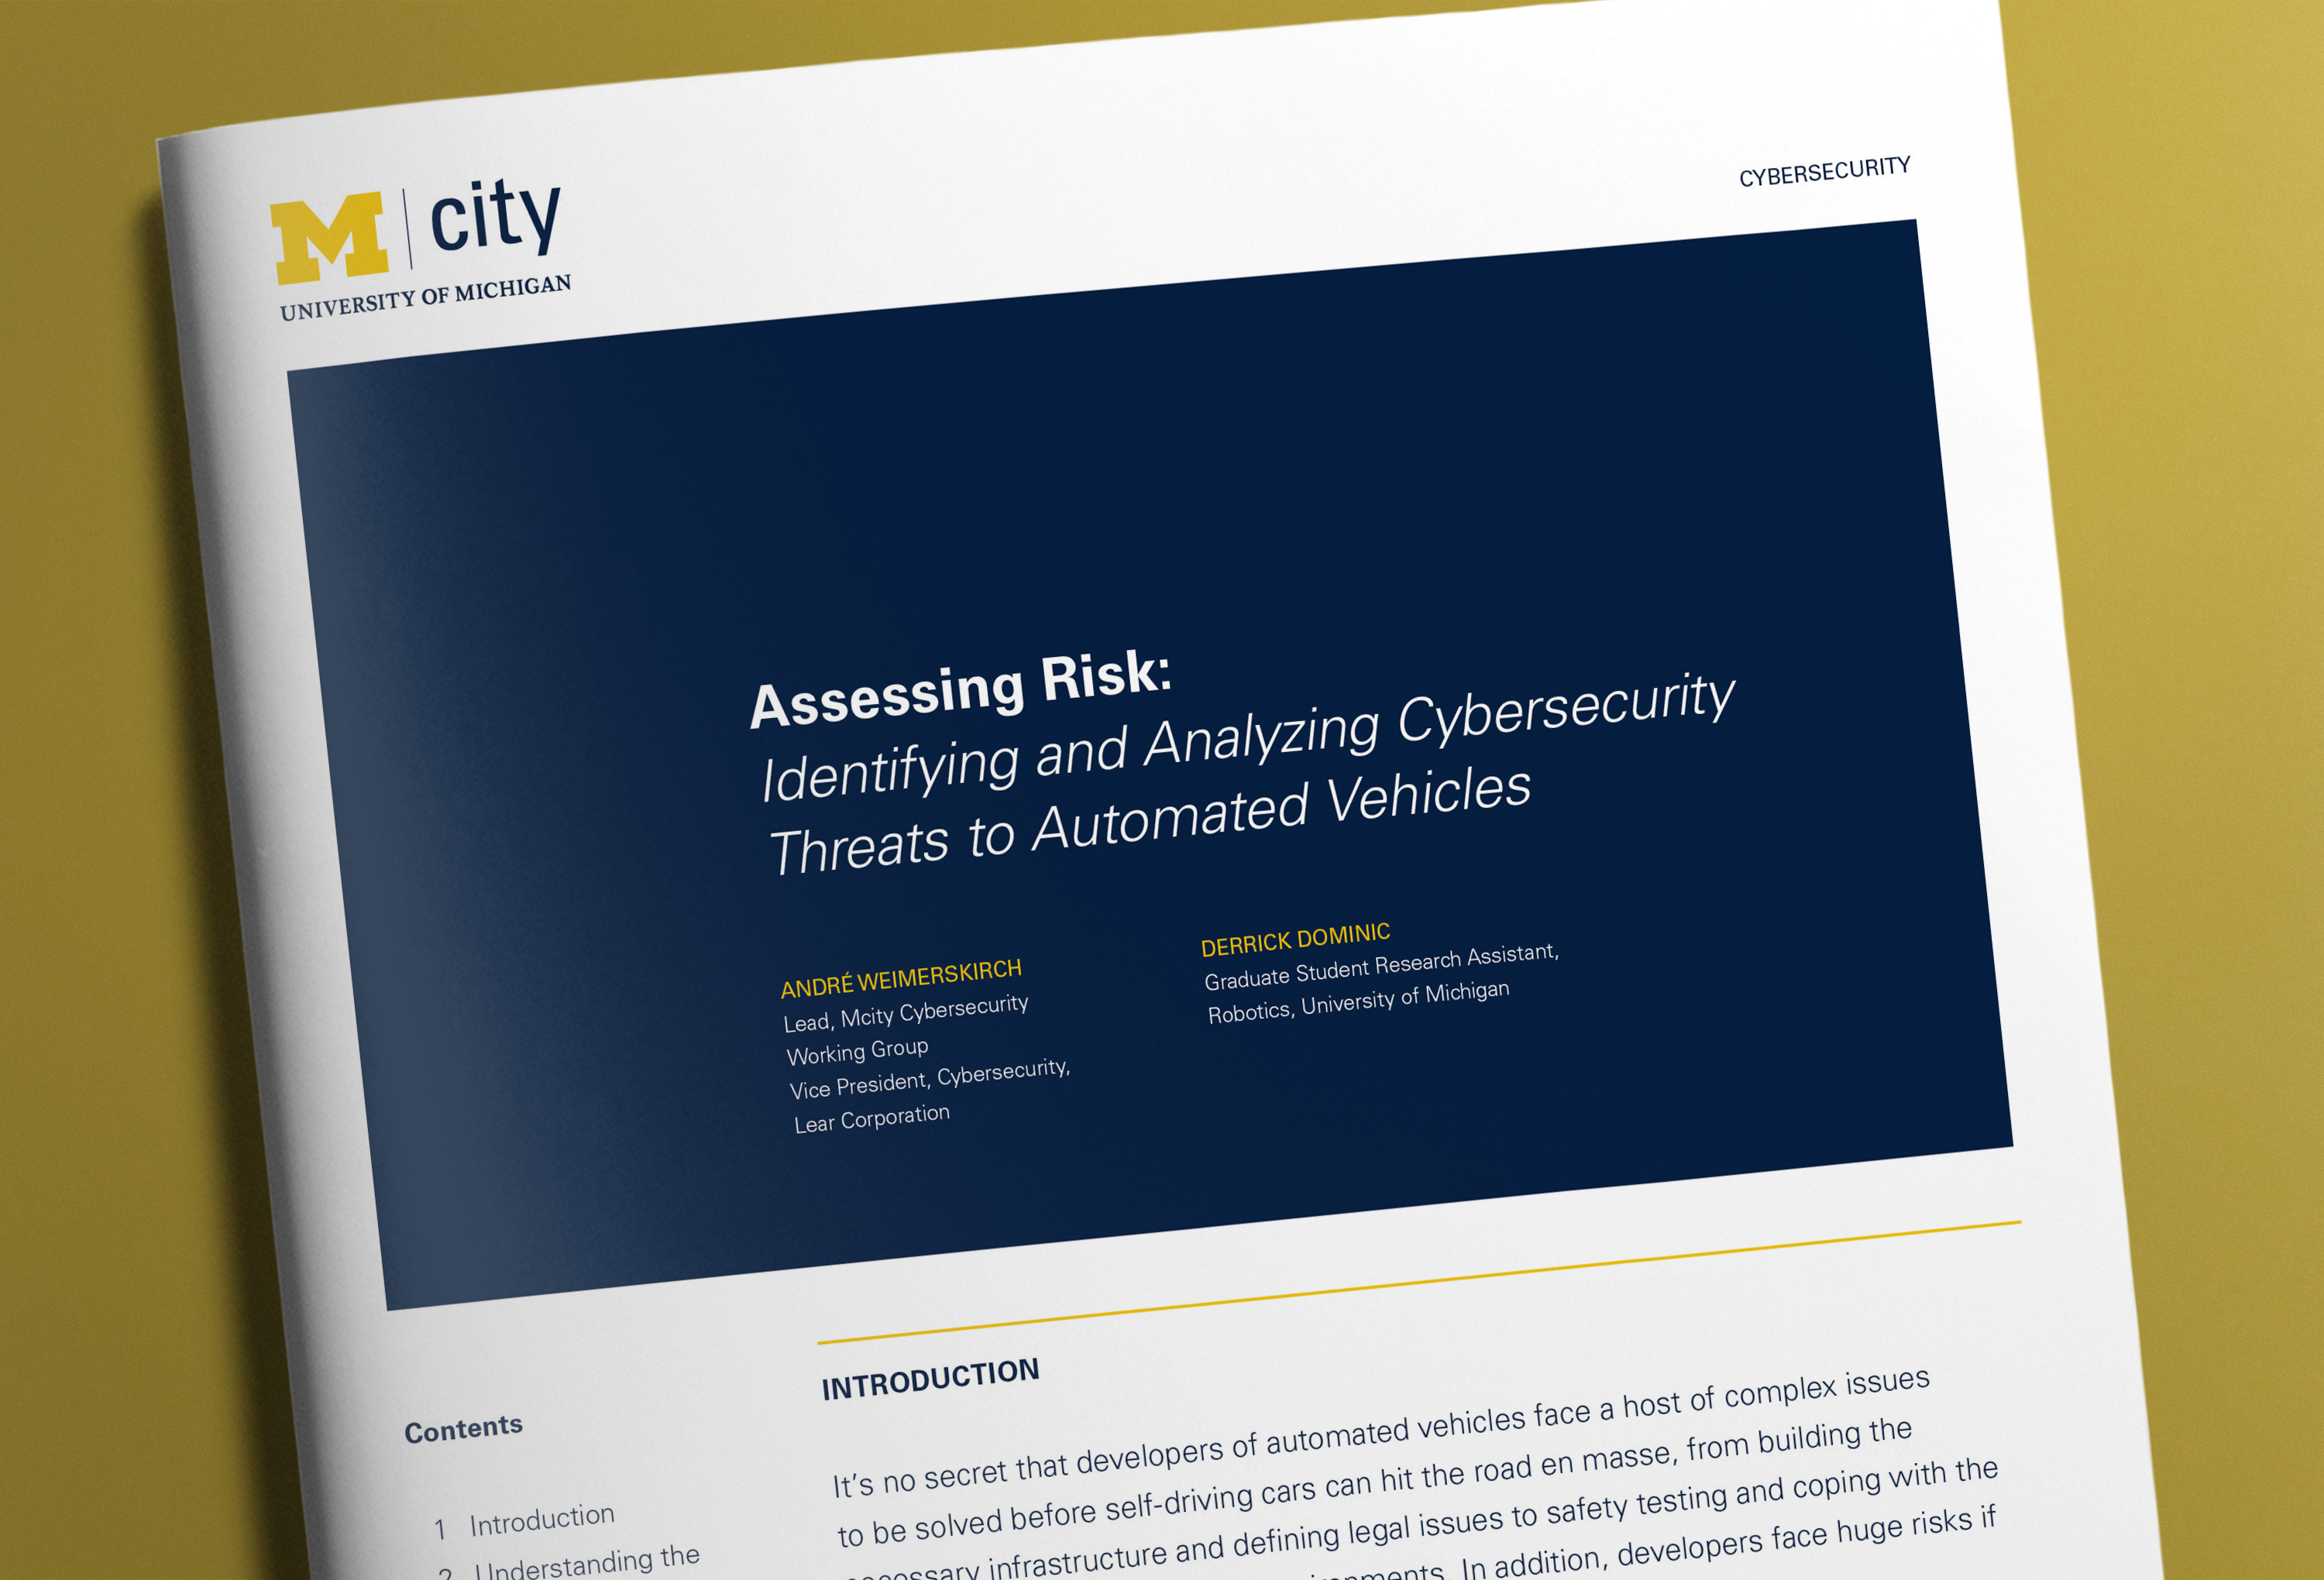 007 Research Paper Papers On Cyber Security Whitepaper Cybersecurity Wonderful In E Commerce Topics Pdf Full